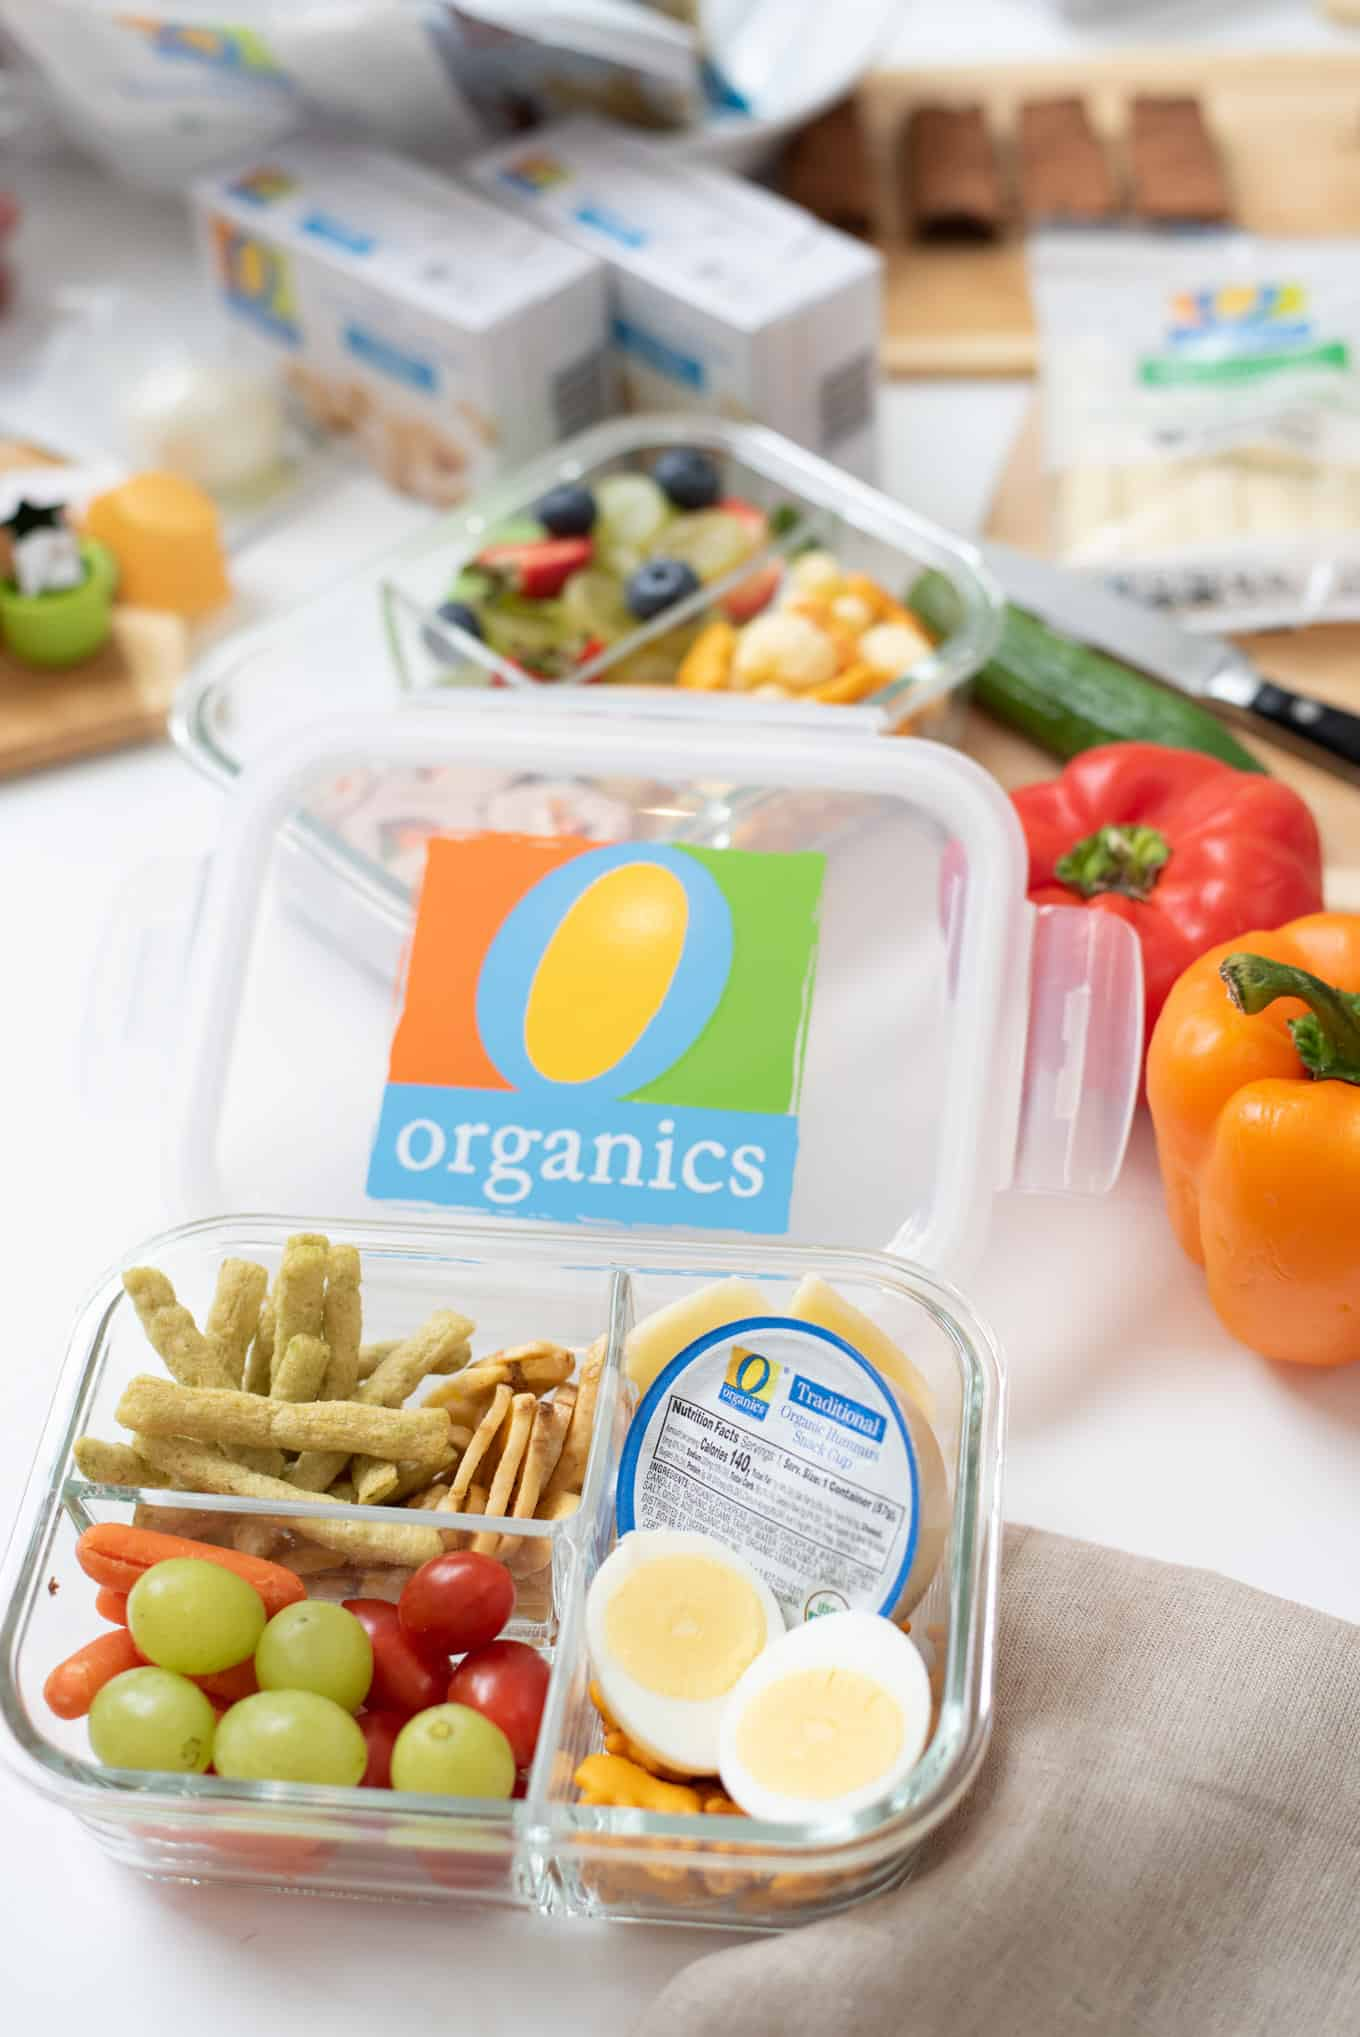 Tasty Snacking with O Organics® + 3 Bento Box Ideas | omgfood.com | AD #OOrganics